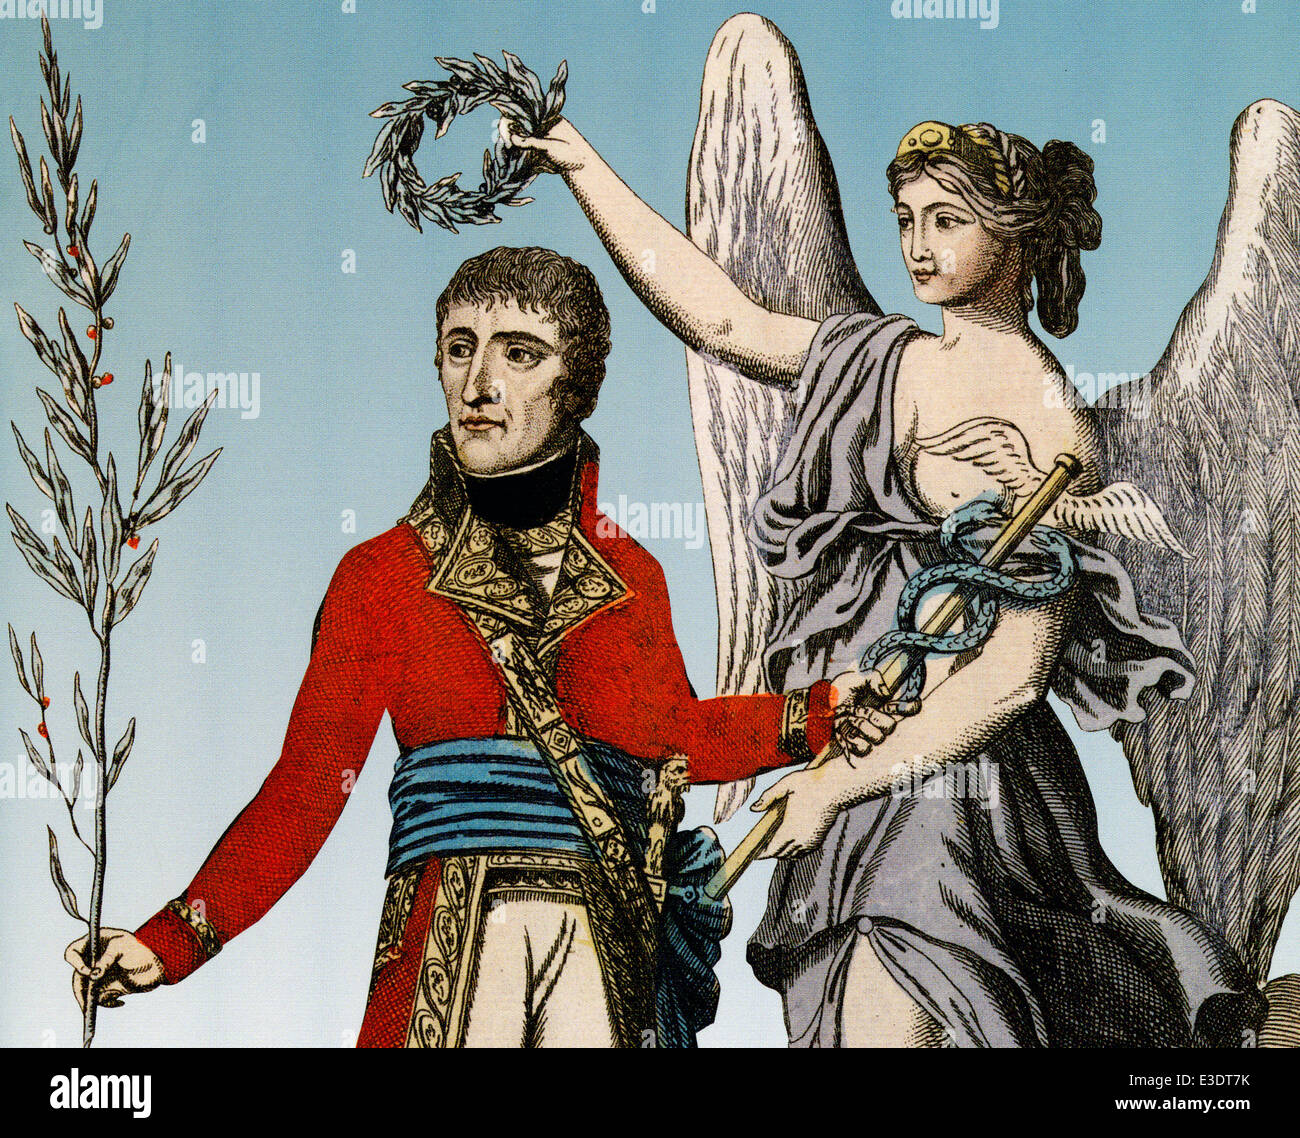 NAPOLEON BONAPARTE (1769-1821) shown bringing peace as First Consul in a hand-coloured illustration in 1802 - Stock Image